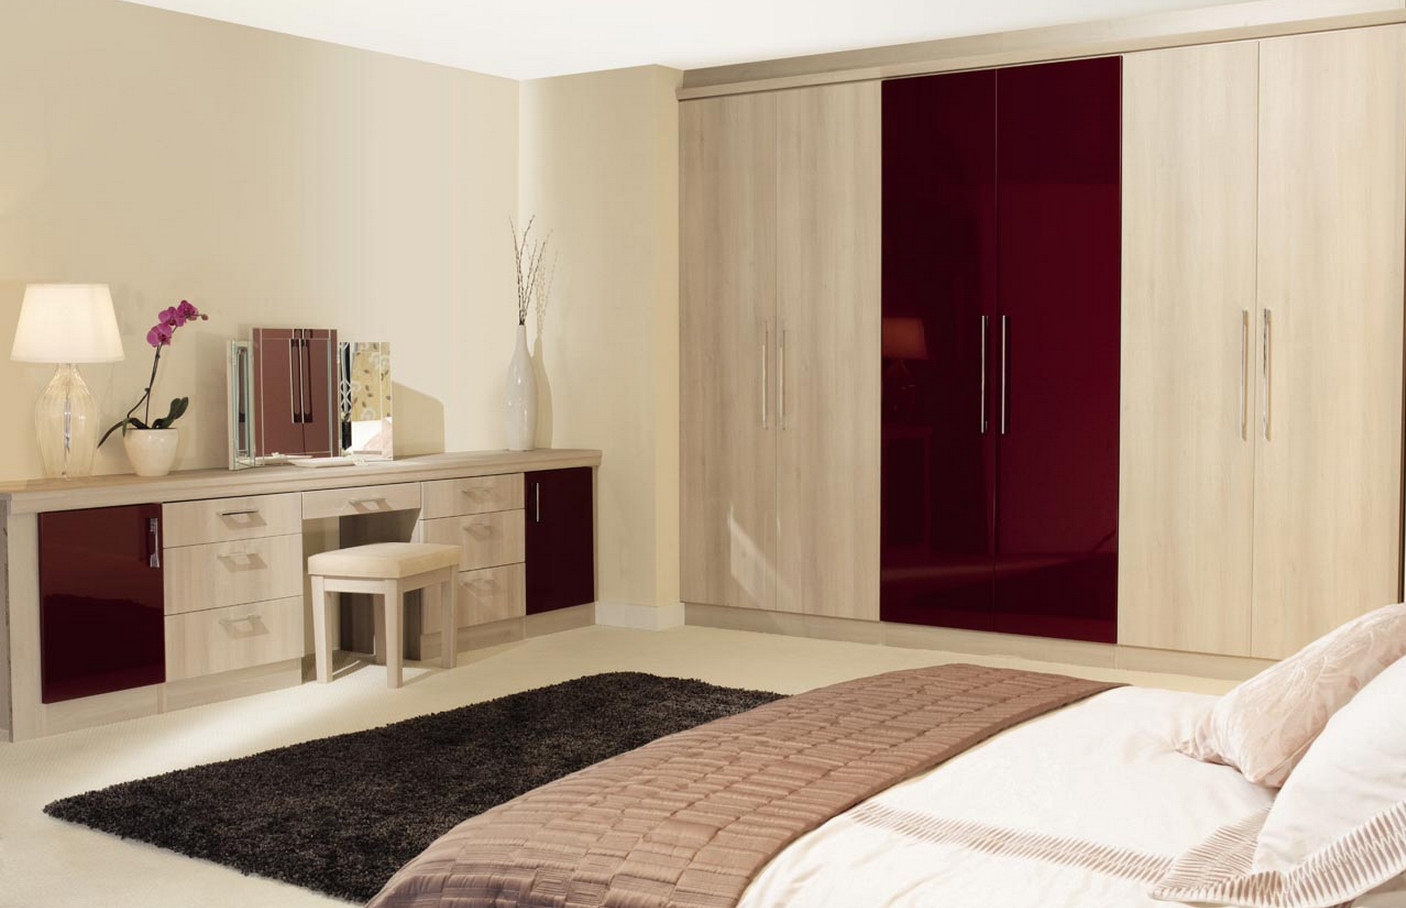 Bedroom furniture wardrobes - The Wardrobe Has Enough Space To Safeguard Your Day To Day Belongings And Fashion Trends Which You Wear While In Office Or At A Party